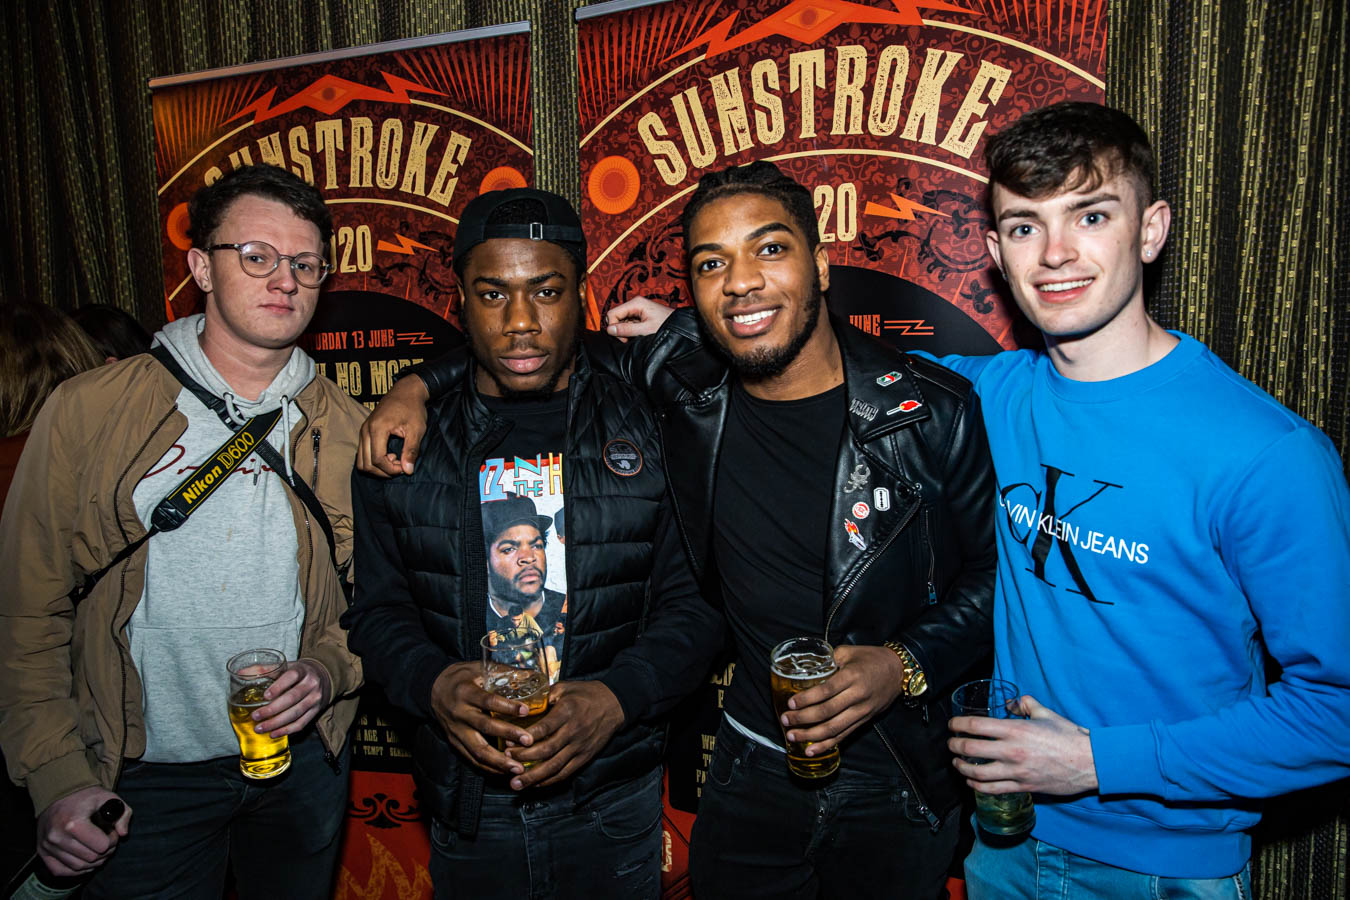 Ryan, Junior Echeruwe, Mubby D. Bankole, Jason Murphy at Sunstroke Launch 2020. ©Glen Bollard / MCD